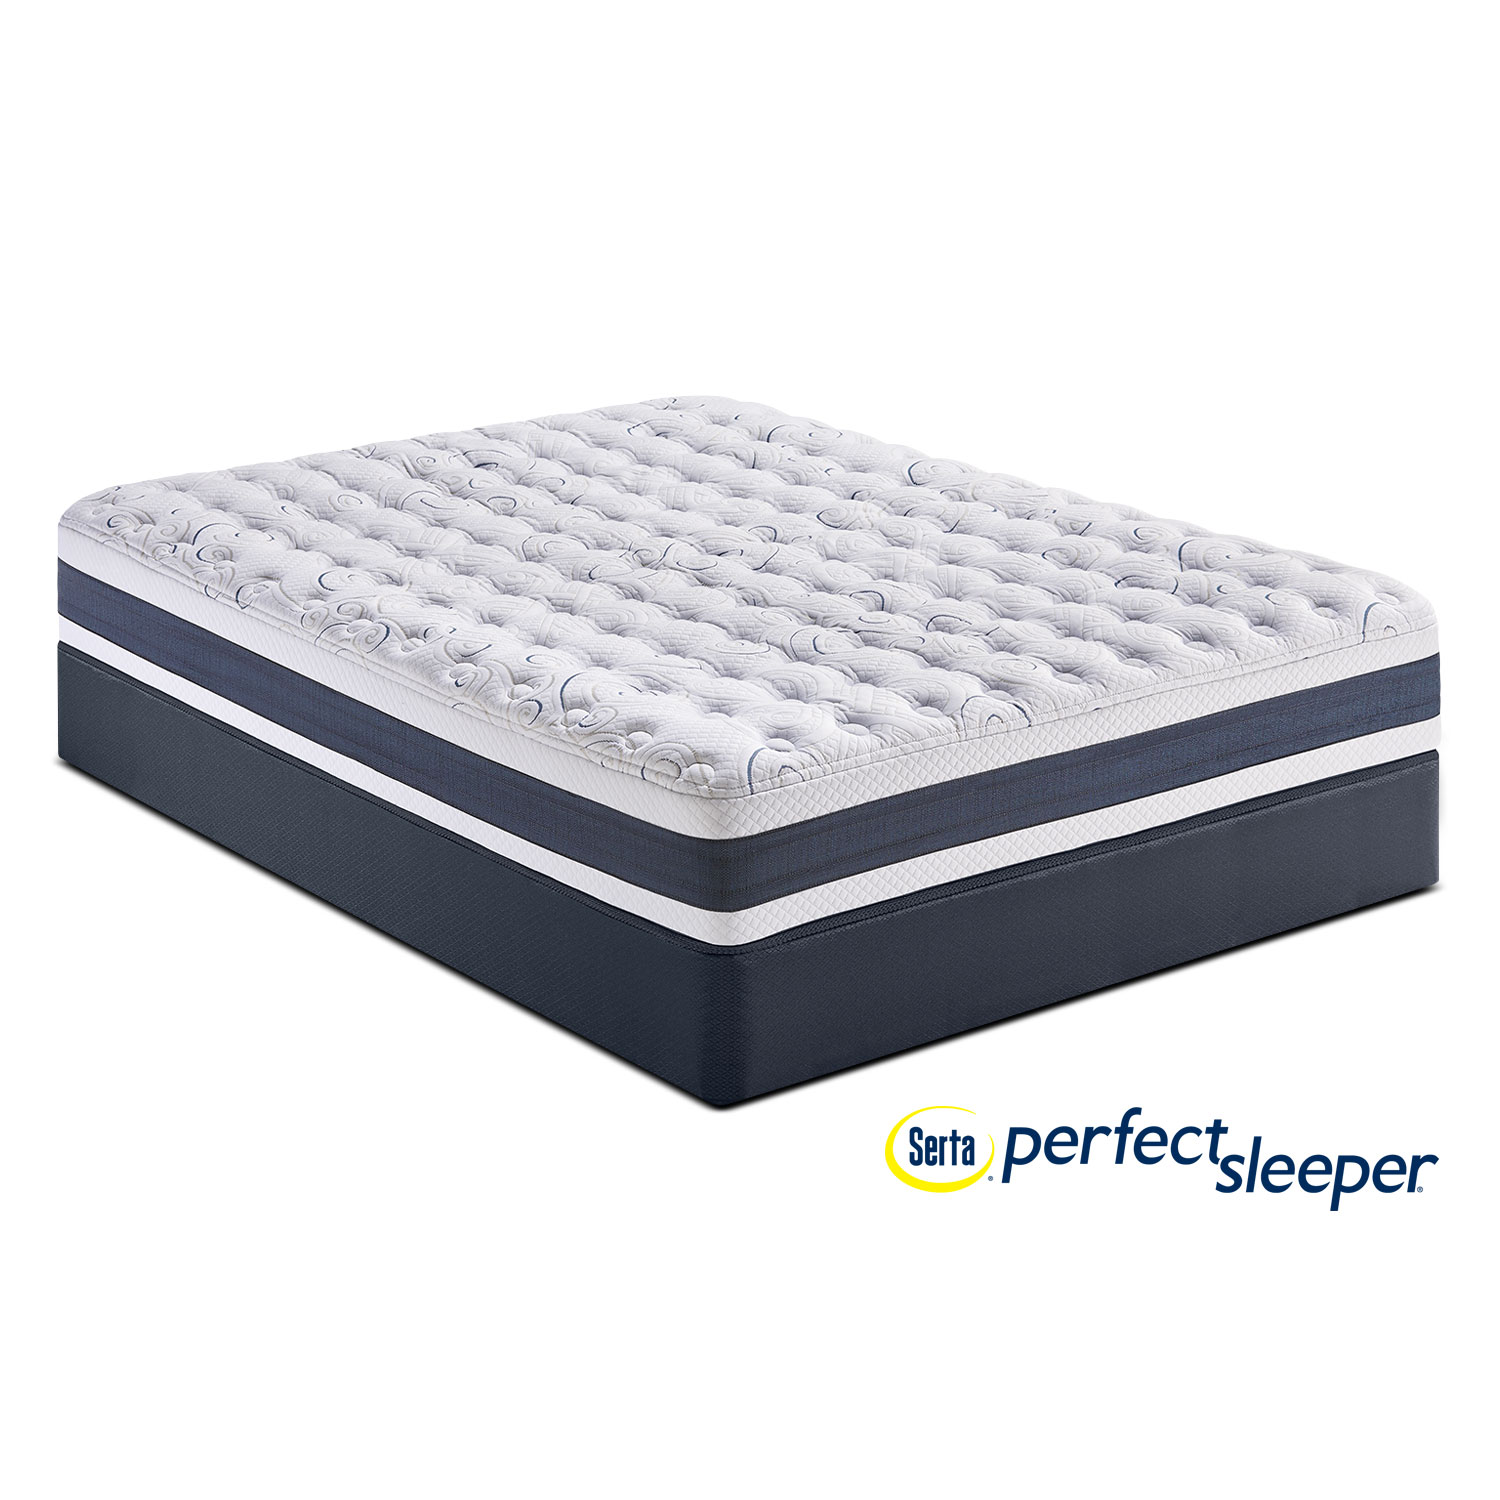 Mattresses and Bedding - Perfect Sleeper Strathfield Firm Twin XL Mattress and Low-Profile Foundation Set